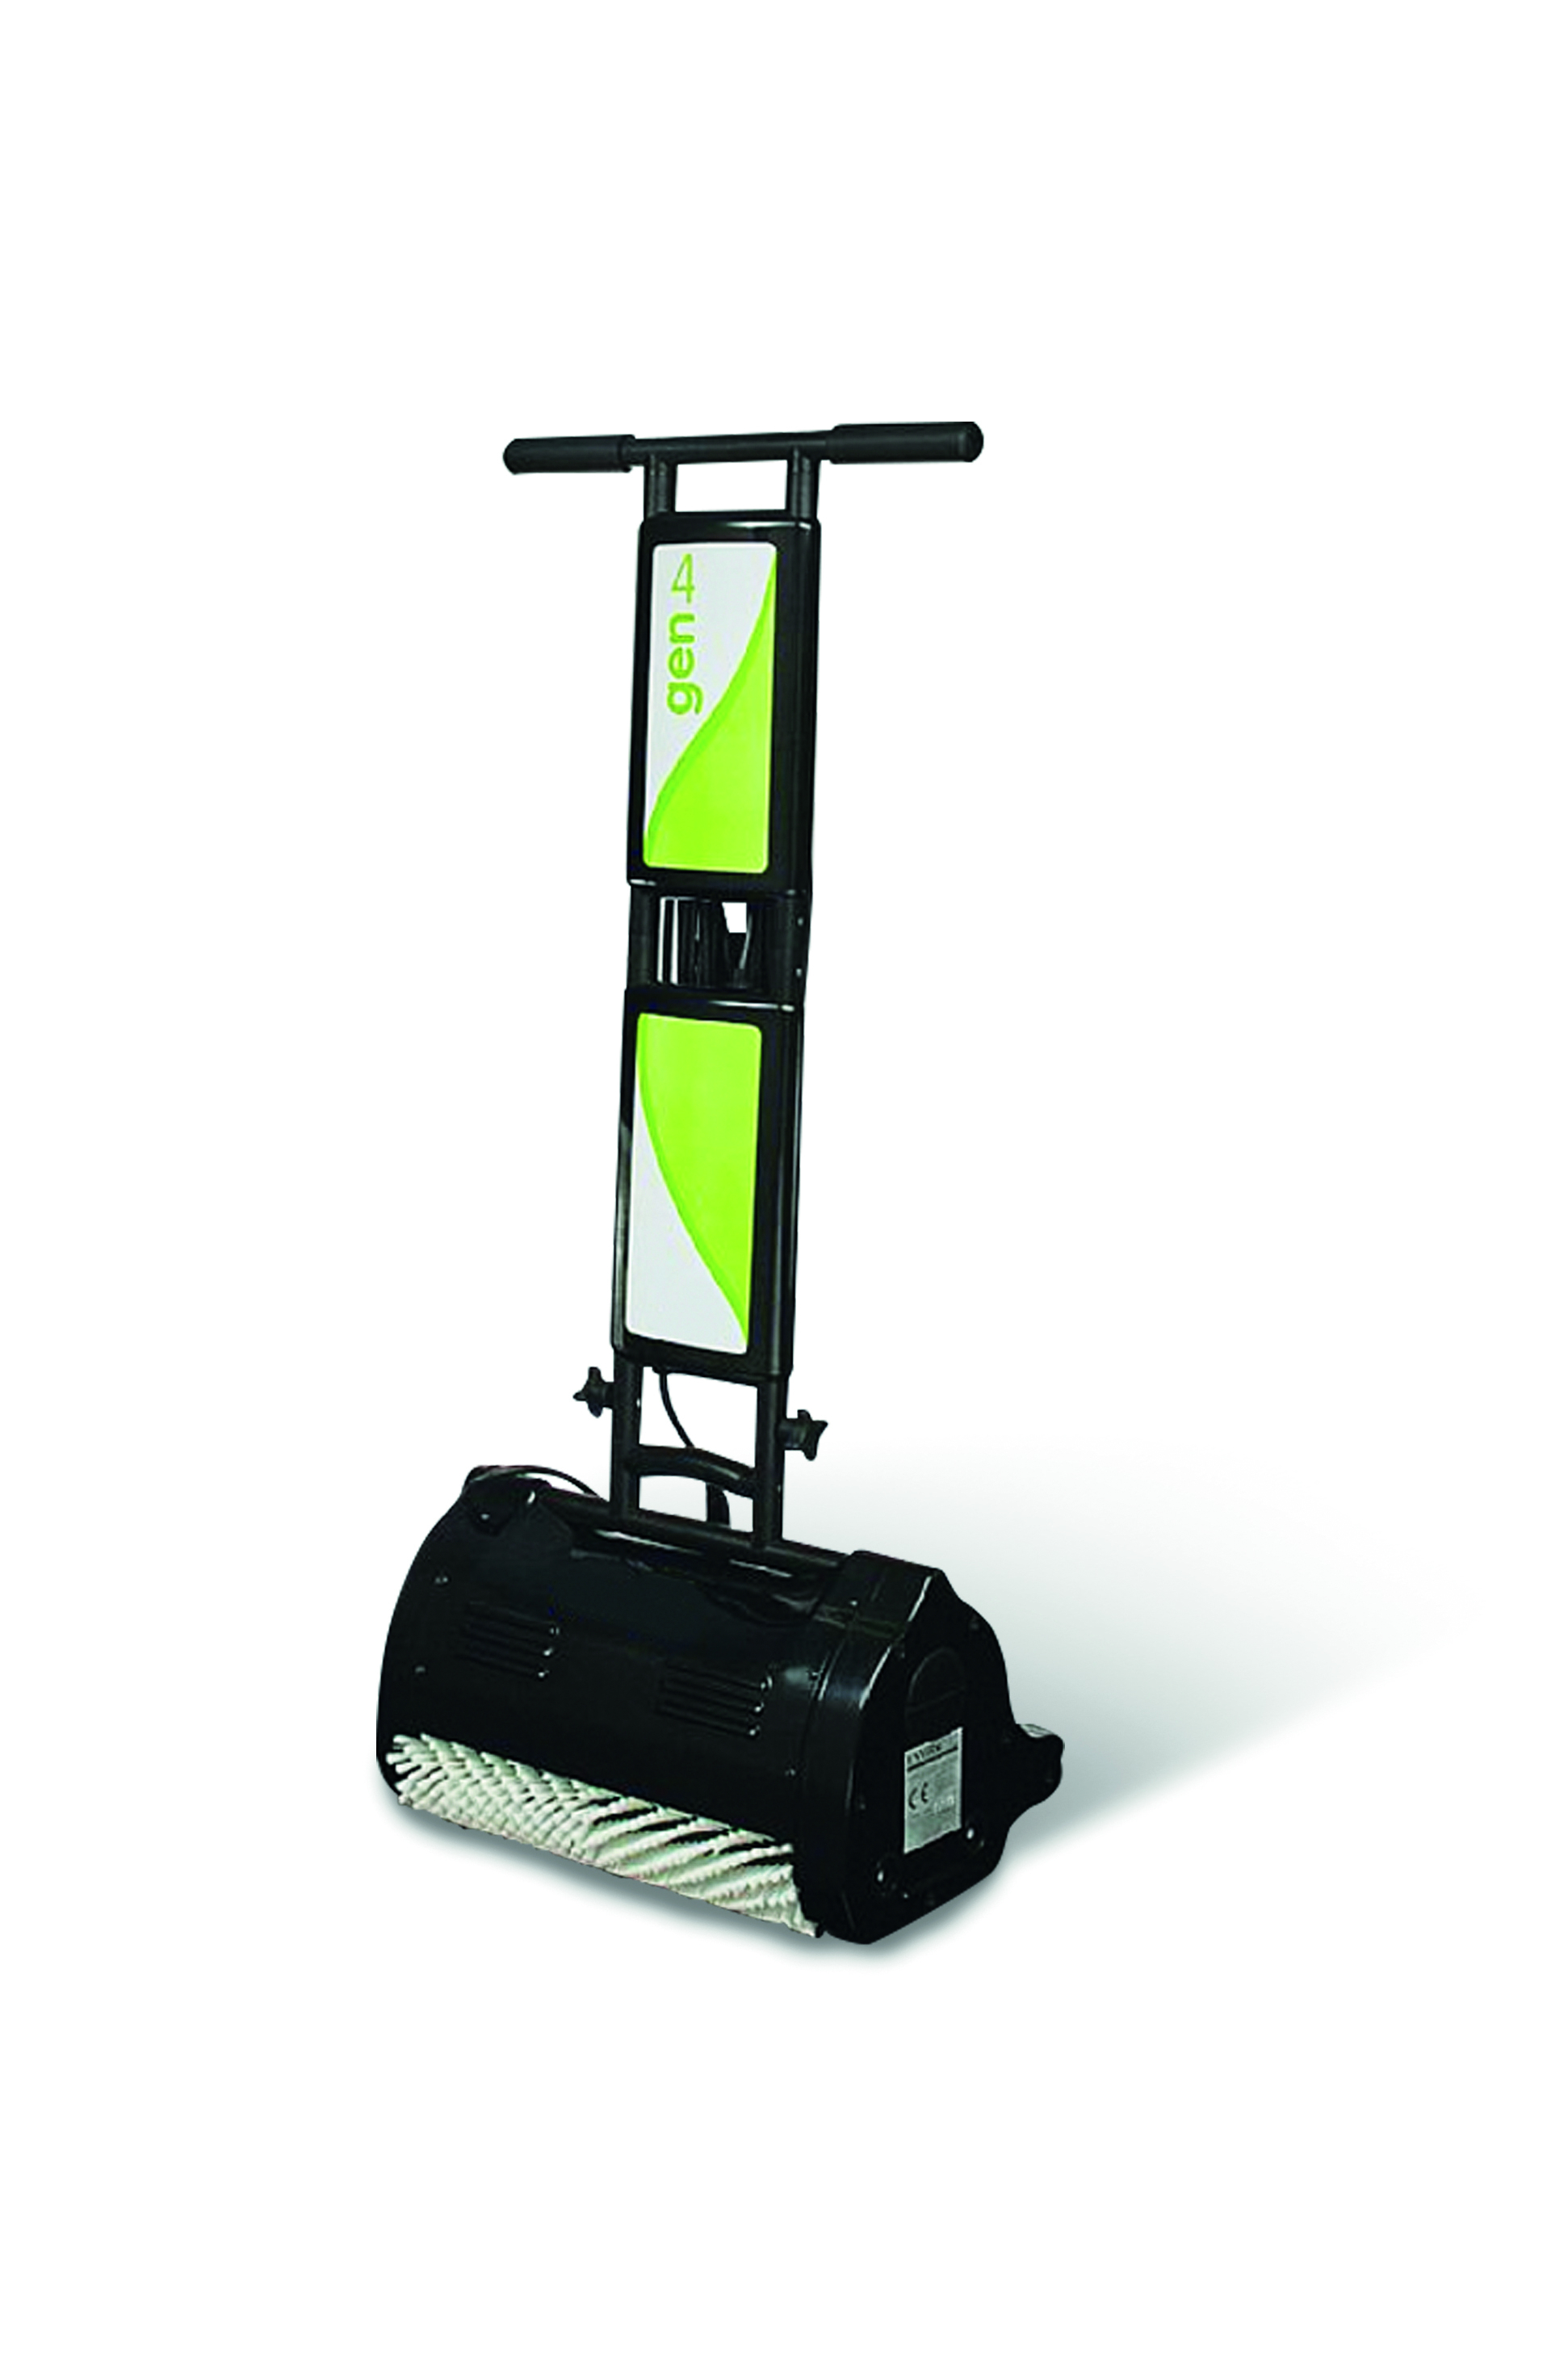 GEN 4 Envirodri Dry Carpet Cleaner